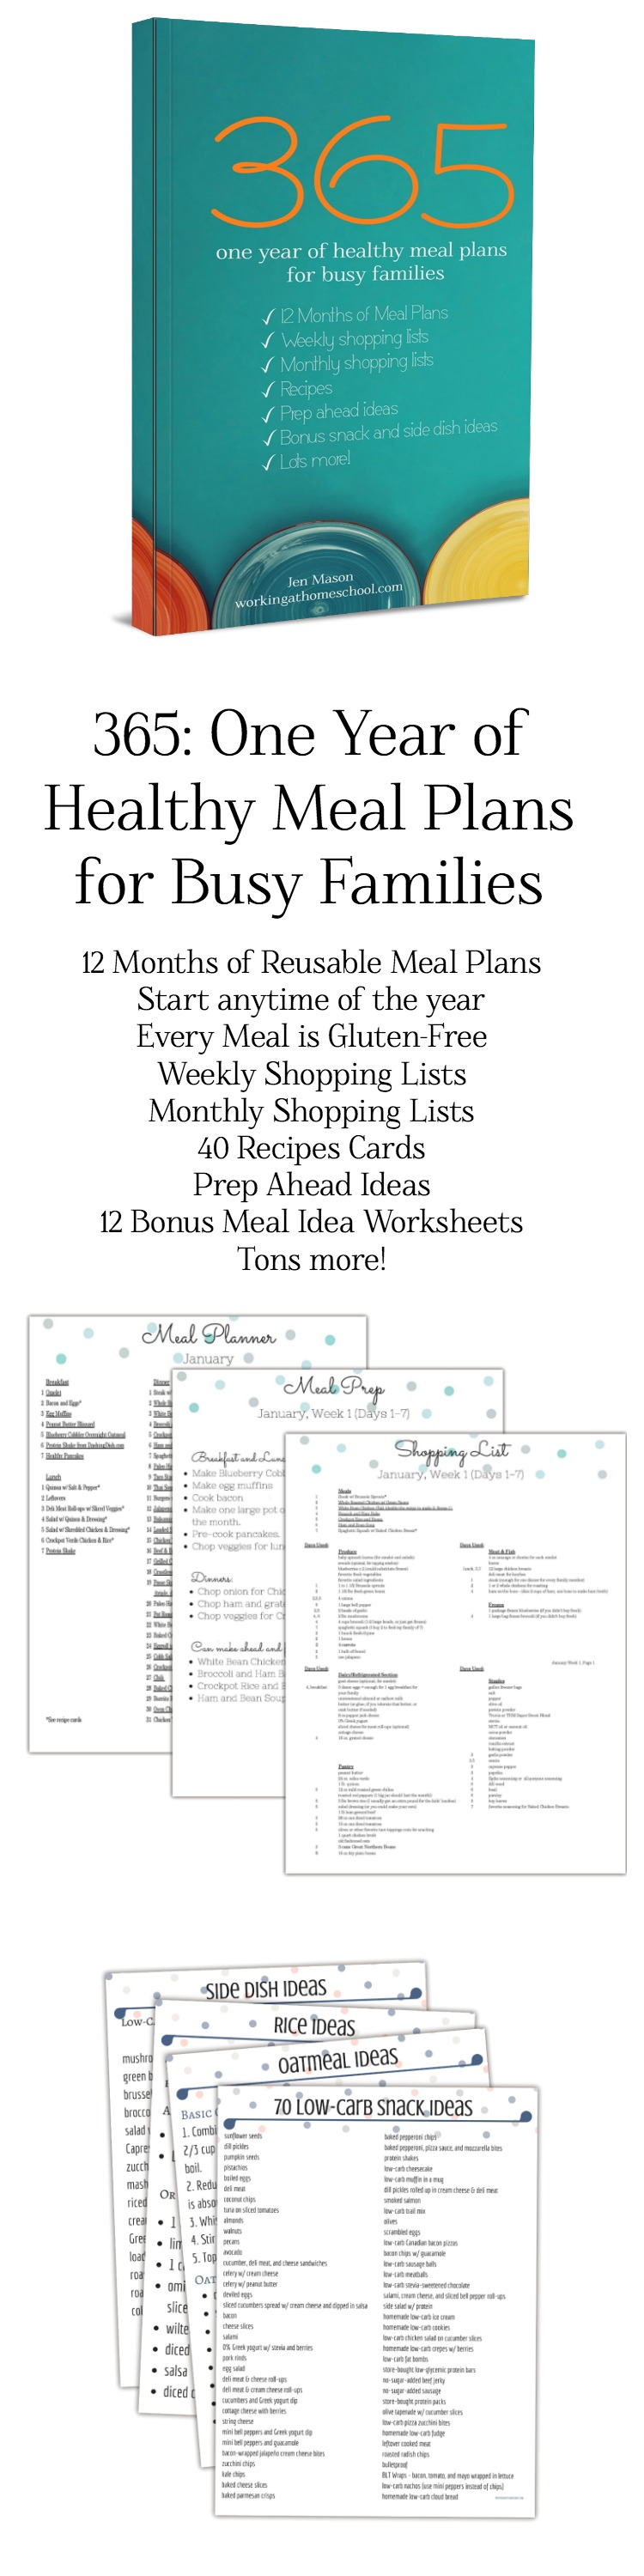 Wow! A full year of healthy meal plans and shopping lists! All gluten-free, too. I use this for THM, and I've saved tons of time because I don't have to meal plan anymore!